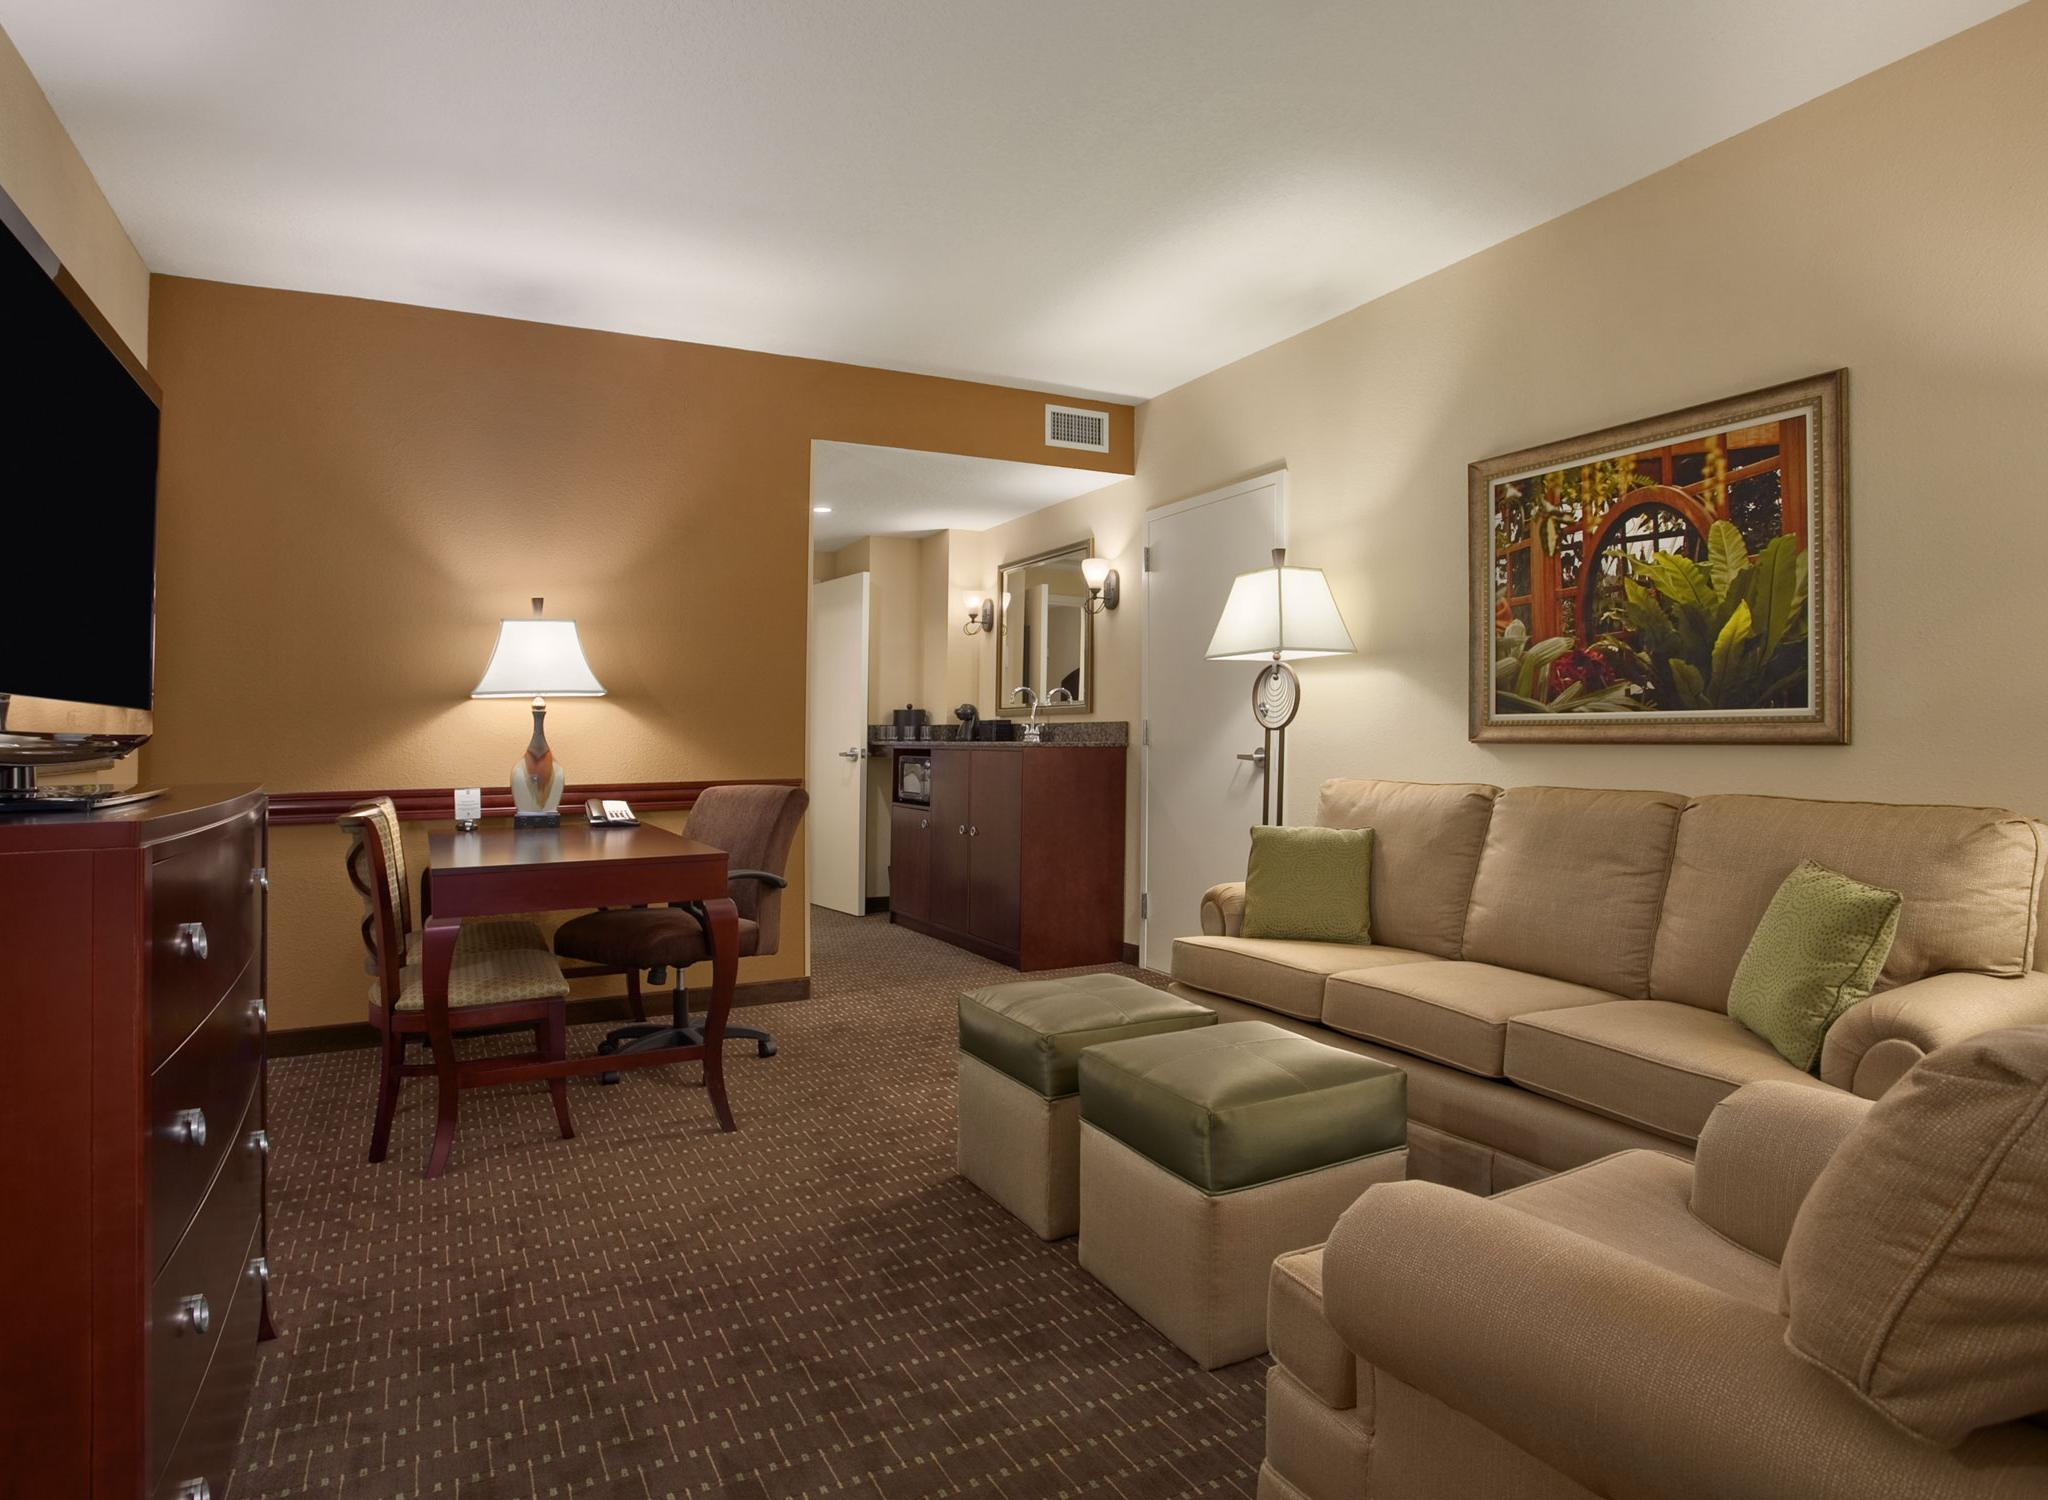 2 Bedroom Suites Orlando 28 Images 2 Bedroom Suites Orlando 28 Images 9 Best Of 2 Bedroom